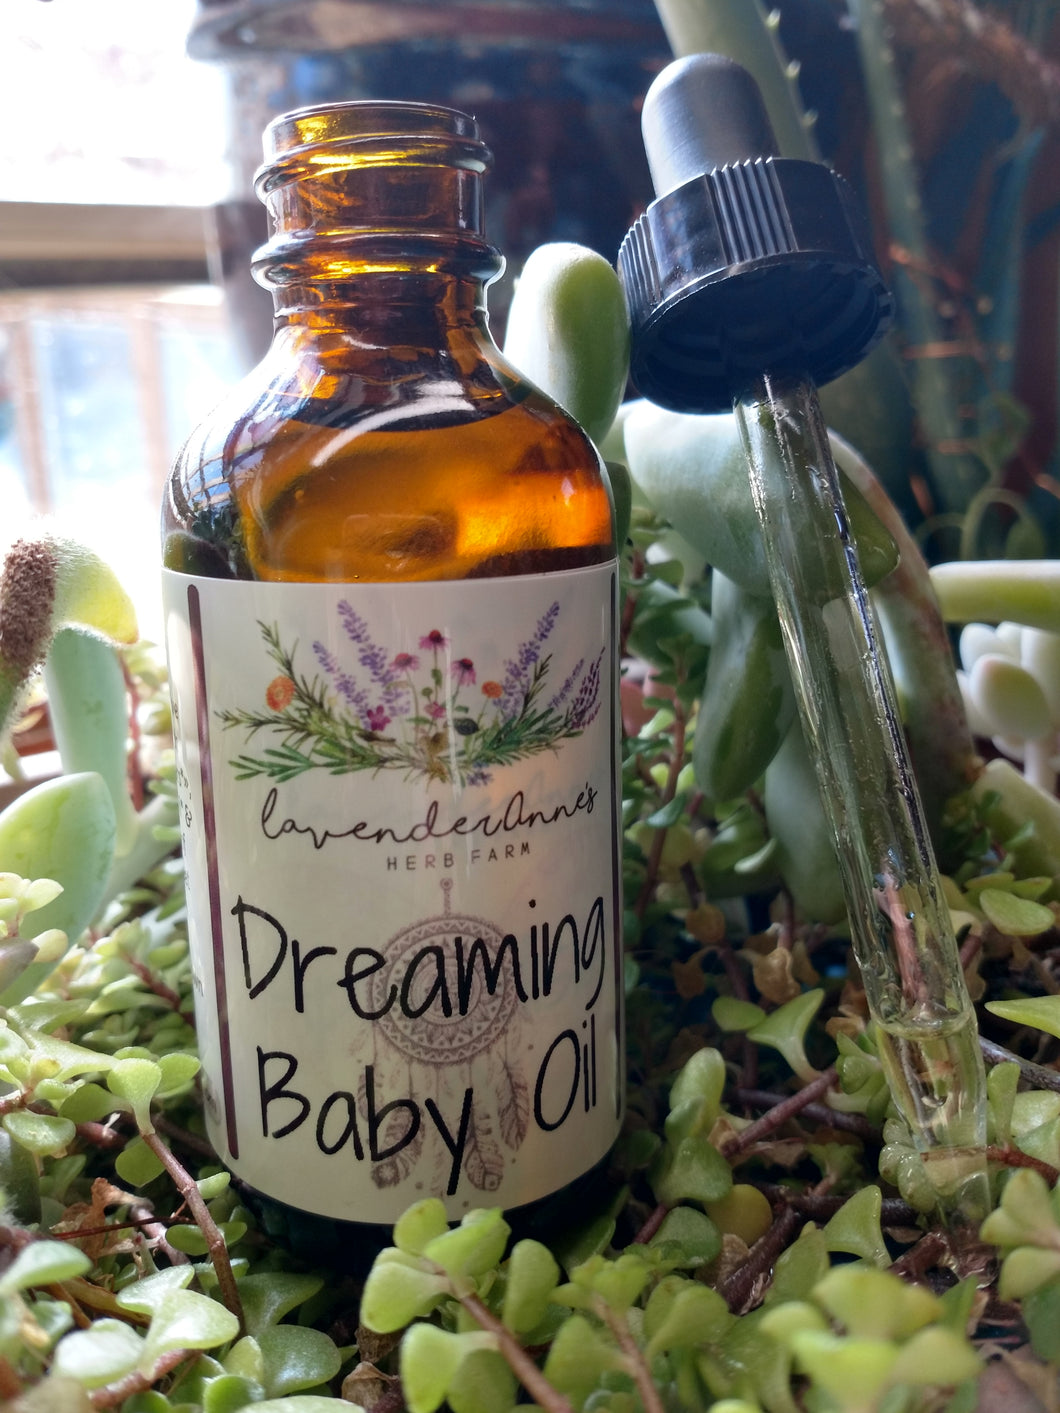 Dreaming Baby Oil